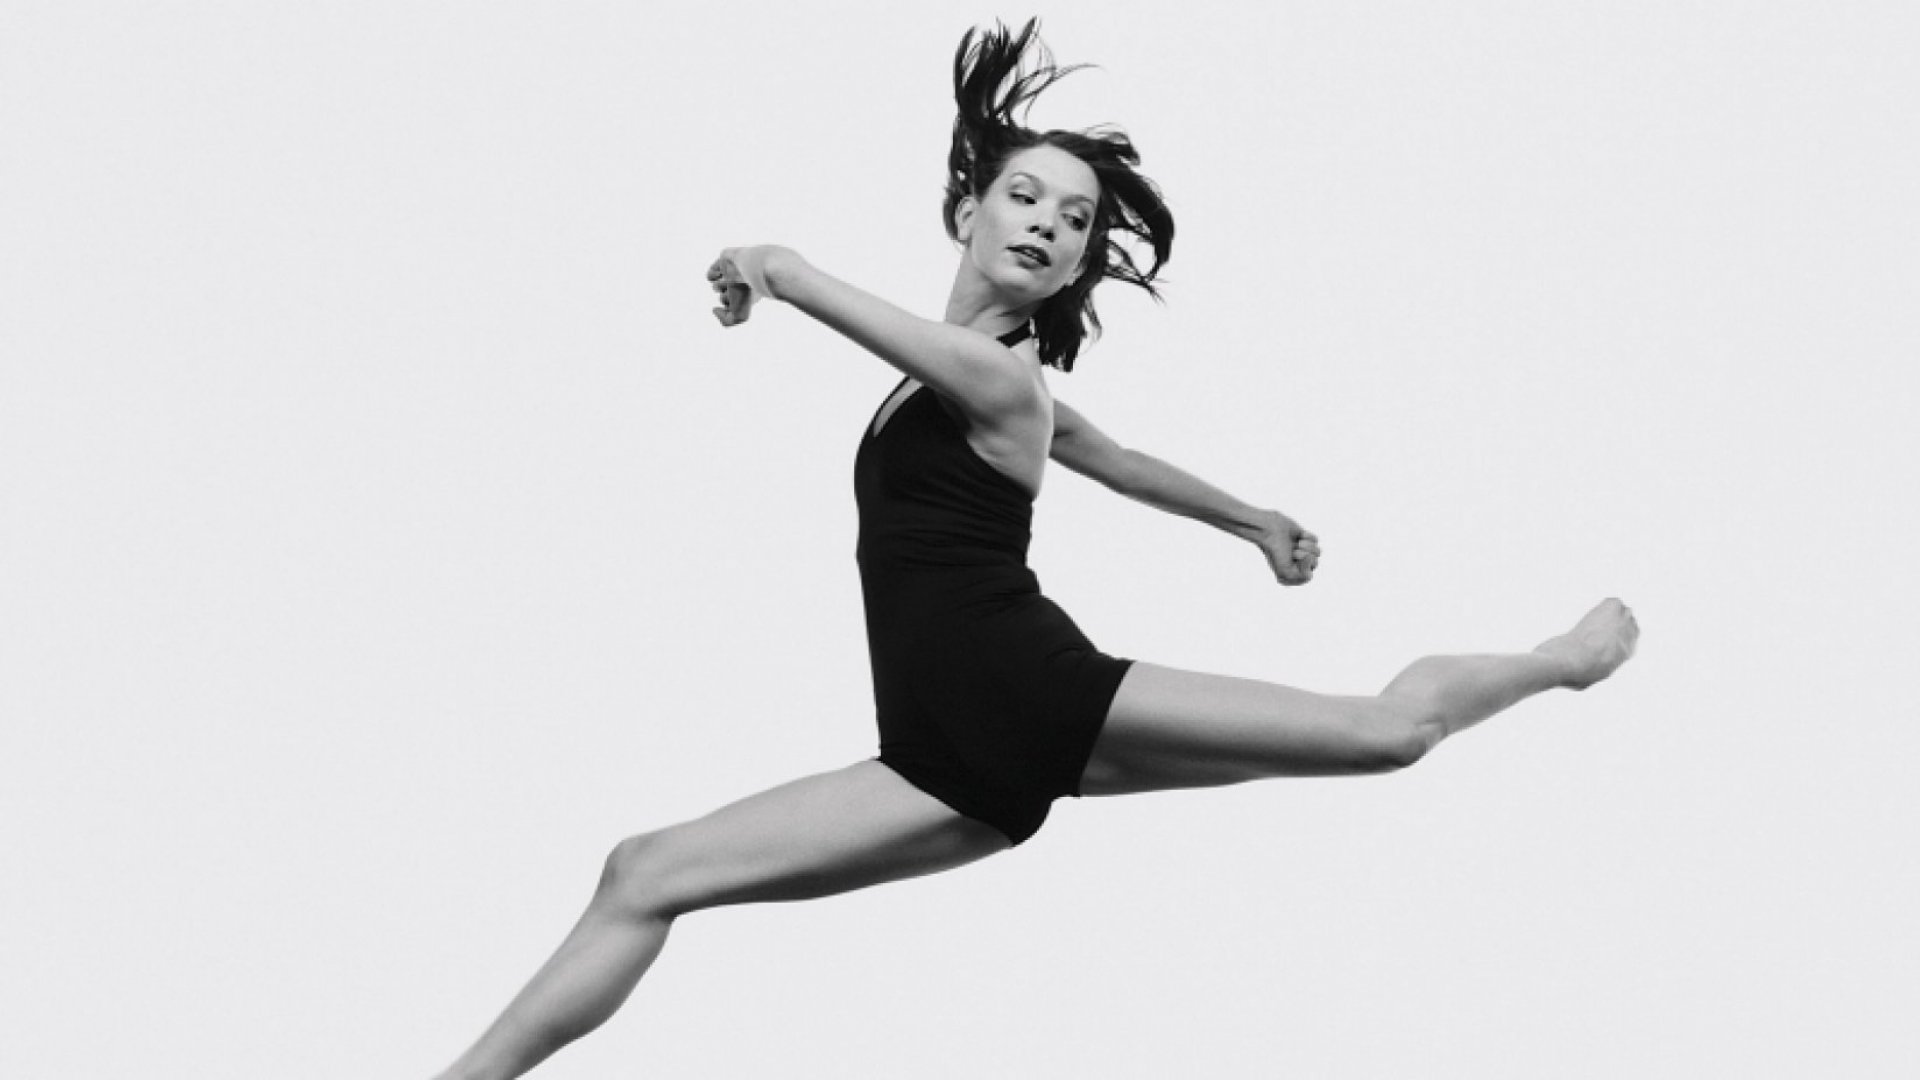 The Lesson in Creativity that Business Leaders Can Learn from Dance